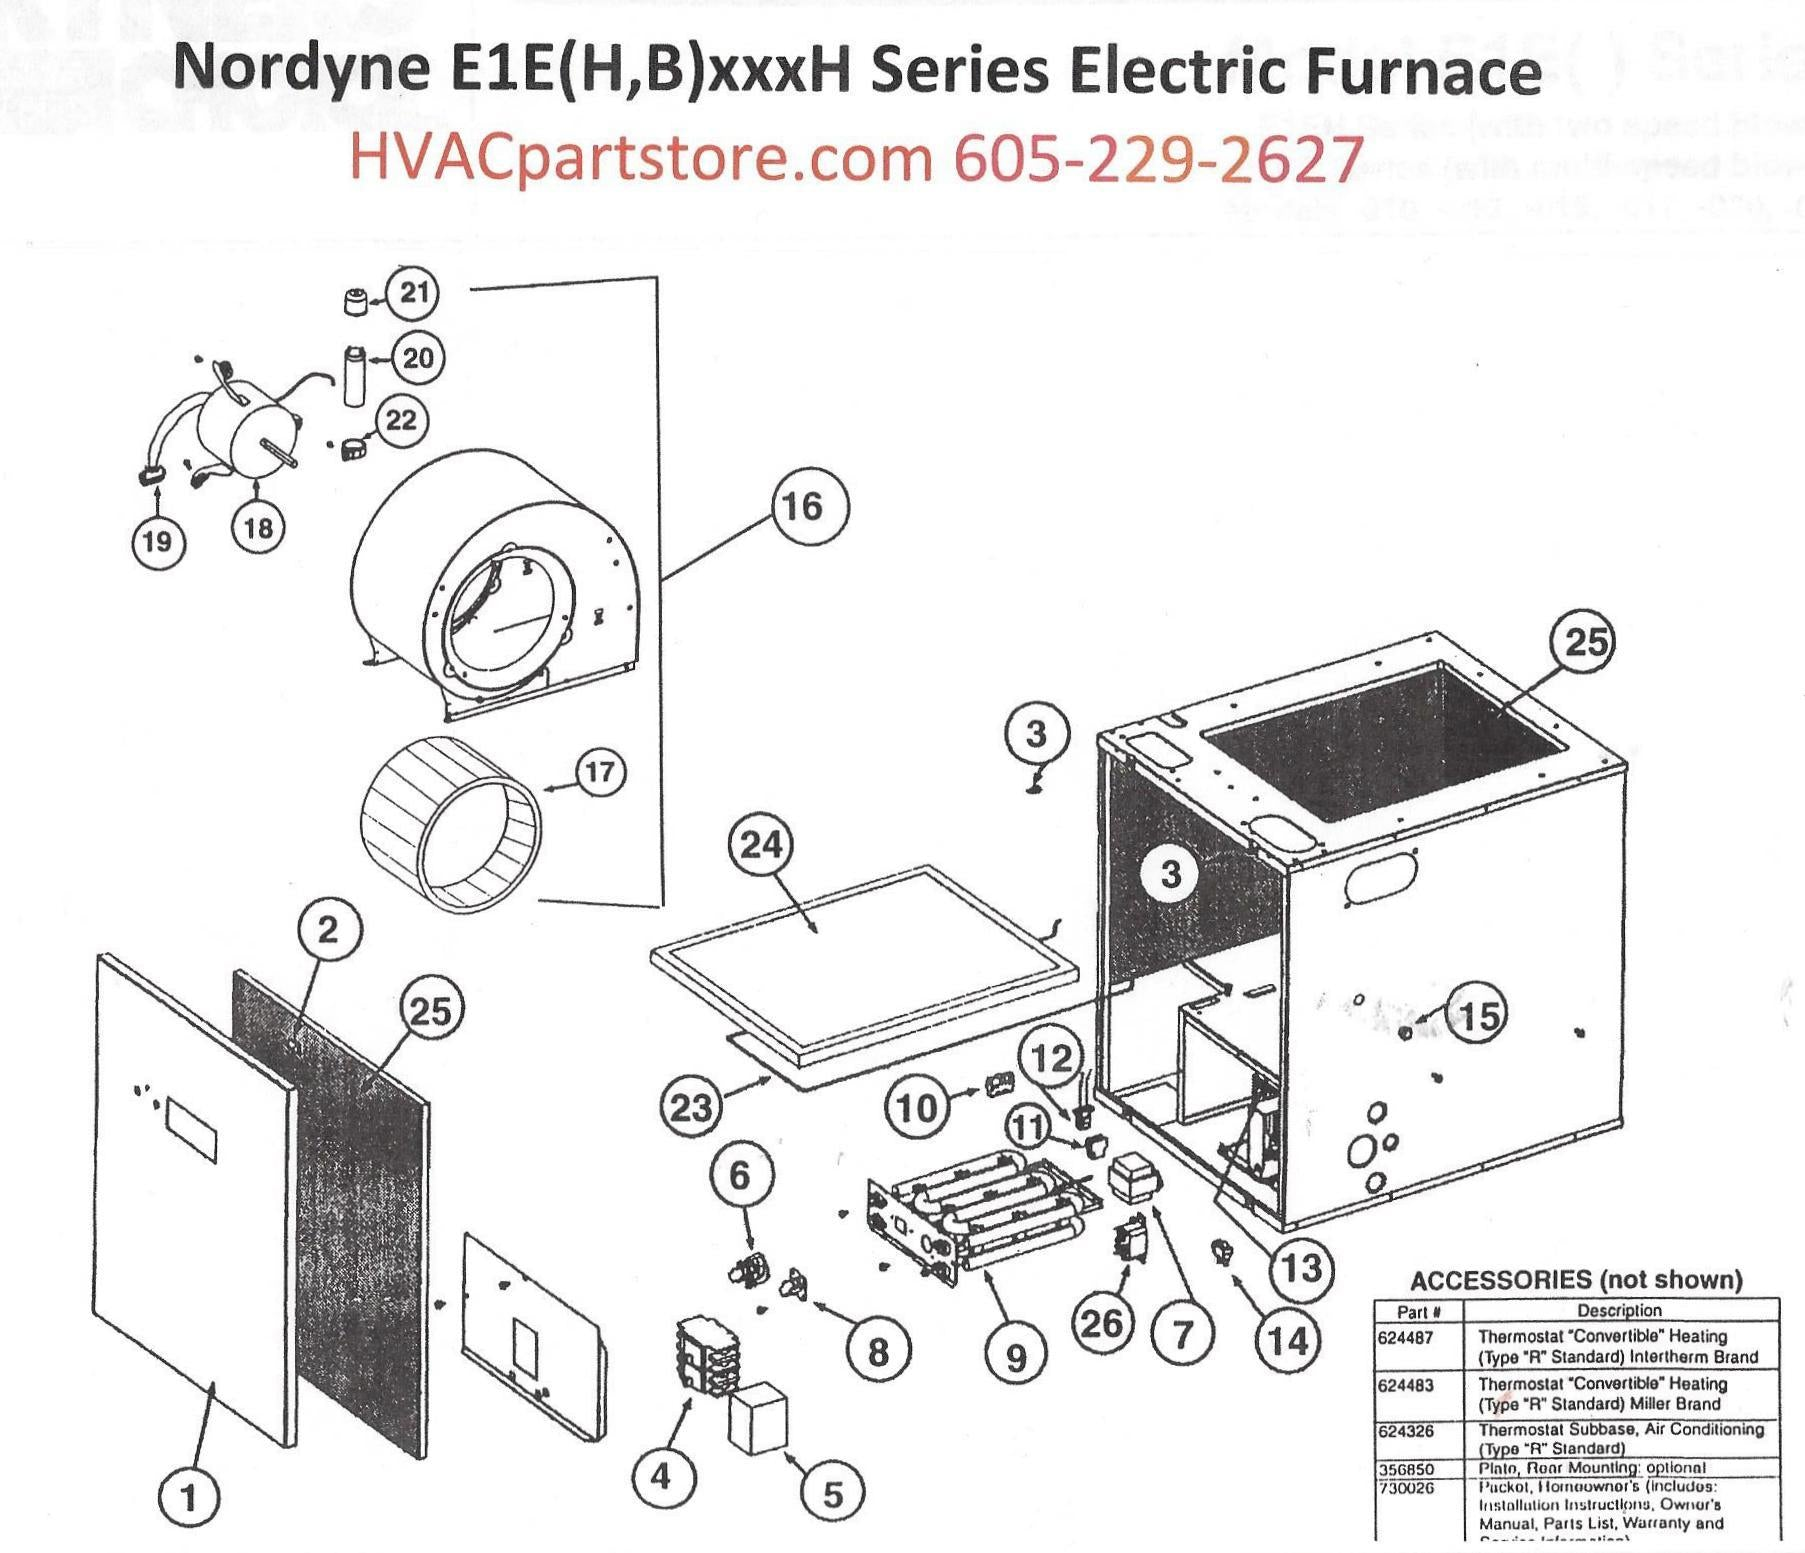 PartsDiagram_02a1912f dcdf 45a8 a9a4 80fe153be30a?14319775571429538179 e1eh017h nordyne electric furnace parts hvacpartstore nordyne e1eb 015ha wiring diagram at reclaimingppi.co